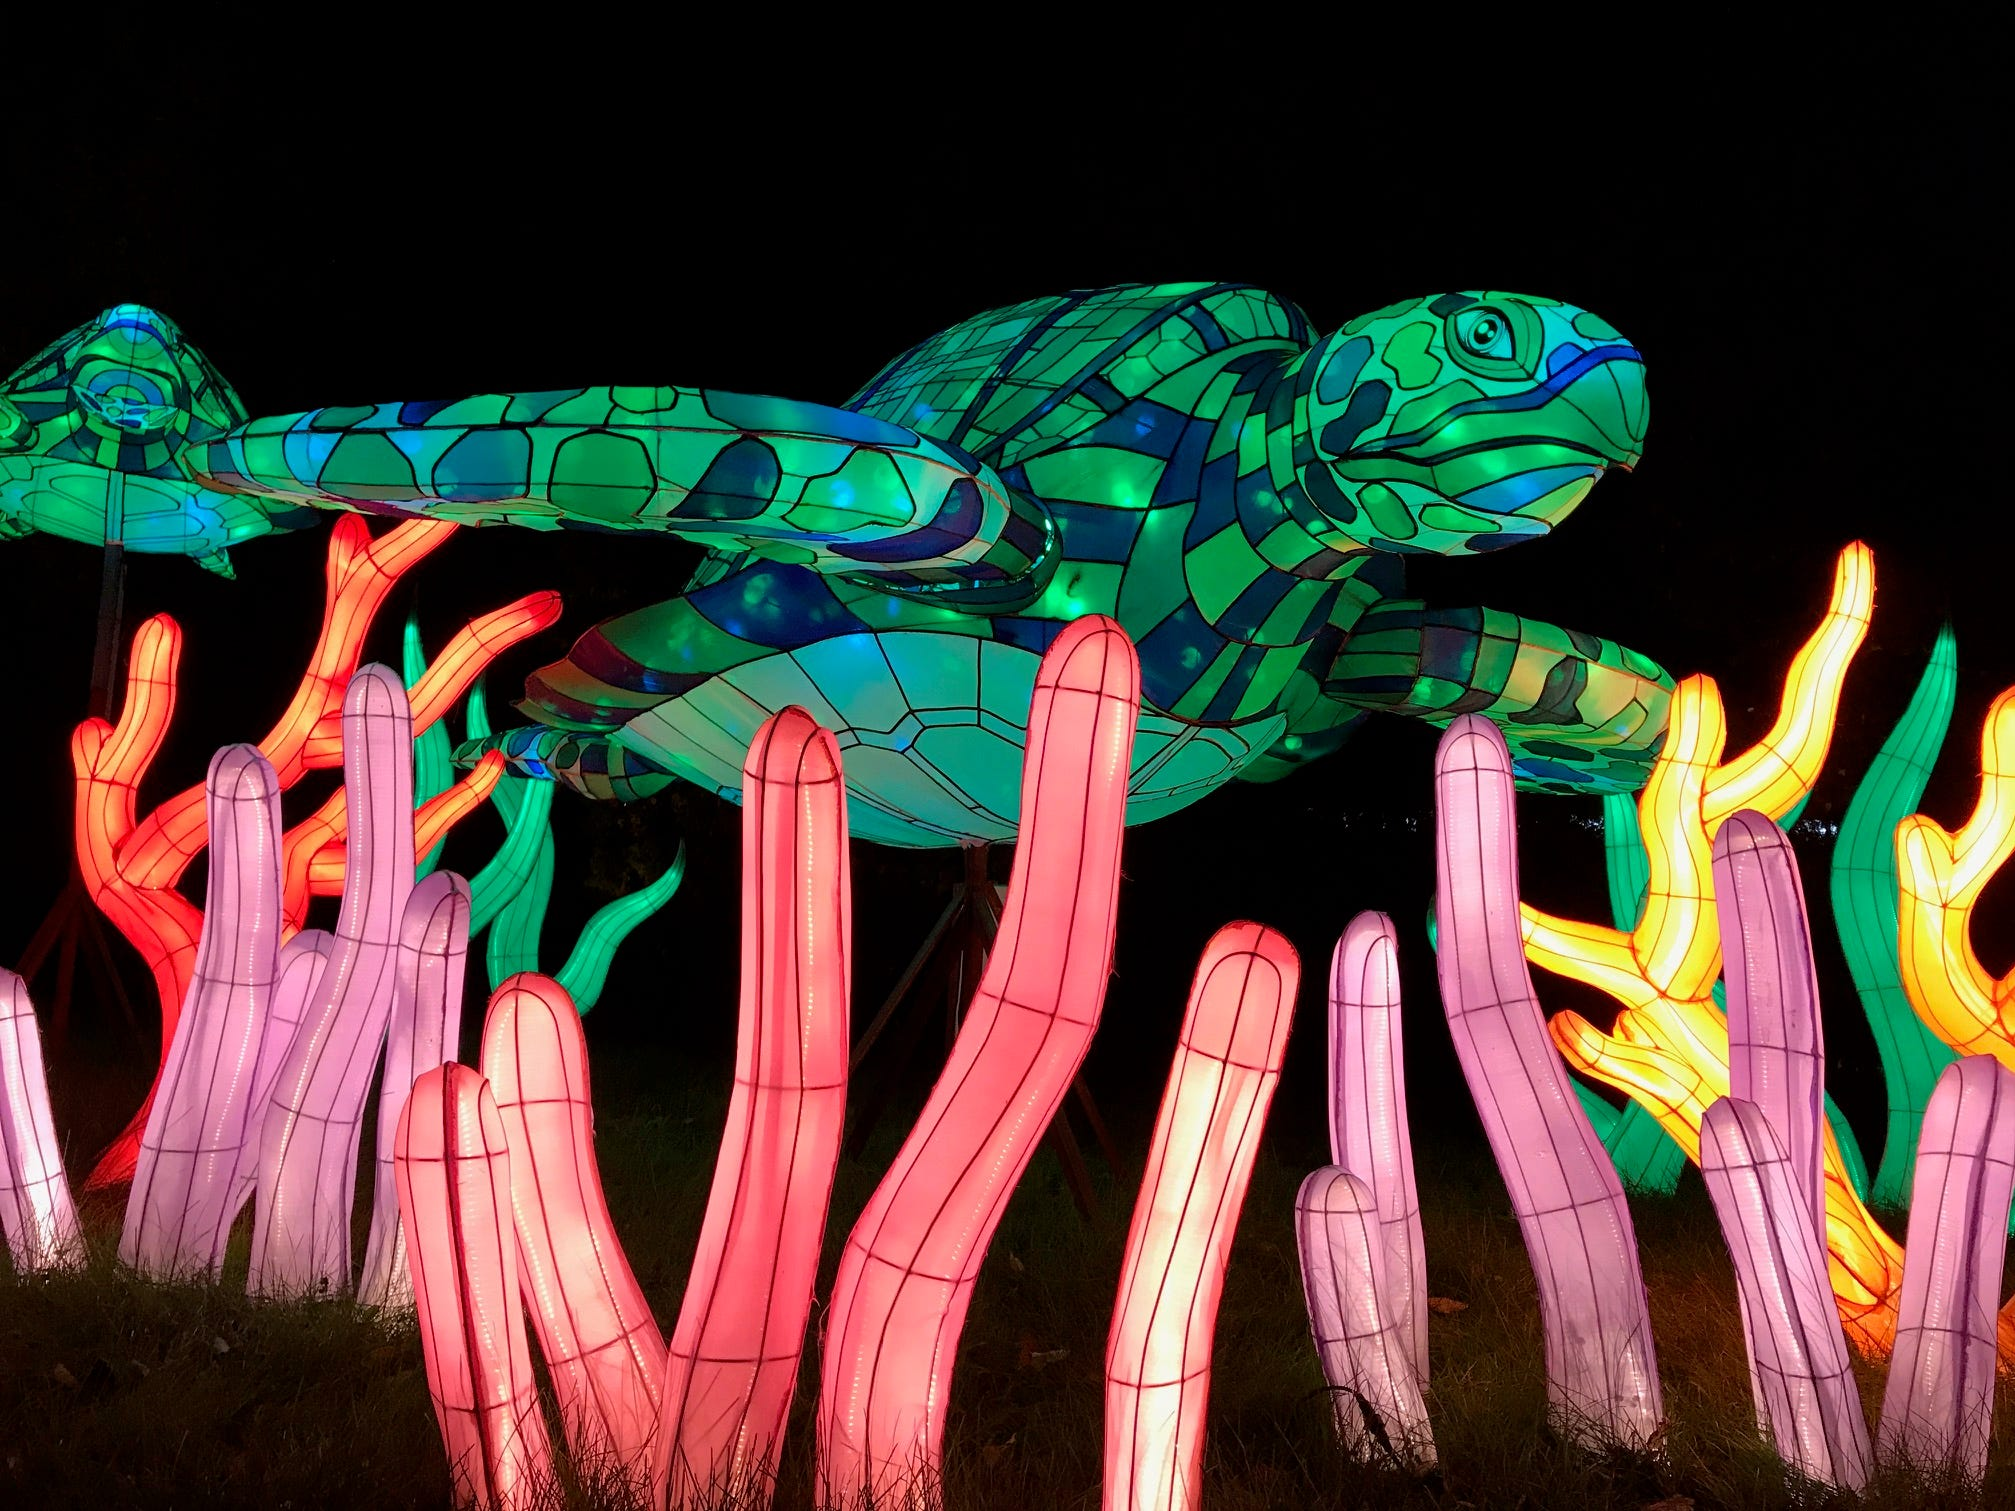 A giant turtle swims through colorful algae at the 2018 China Lights lantern festival. The turtle is one of many new displays at this year's event.